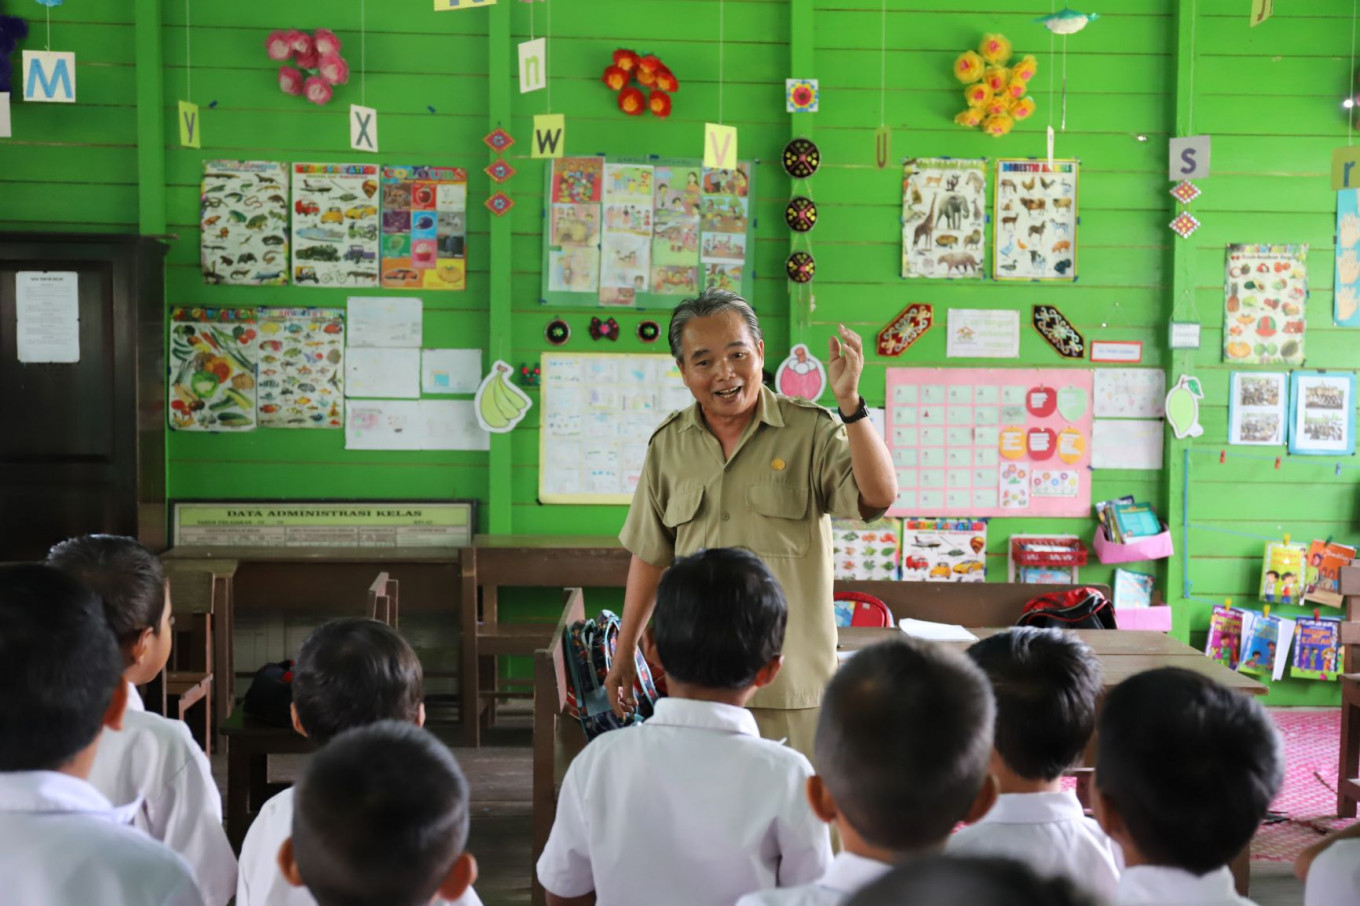 Jungle school: Making a change in classrooms